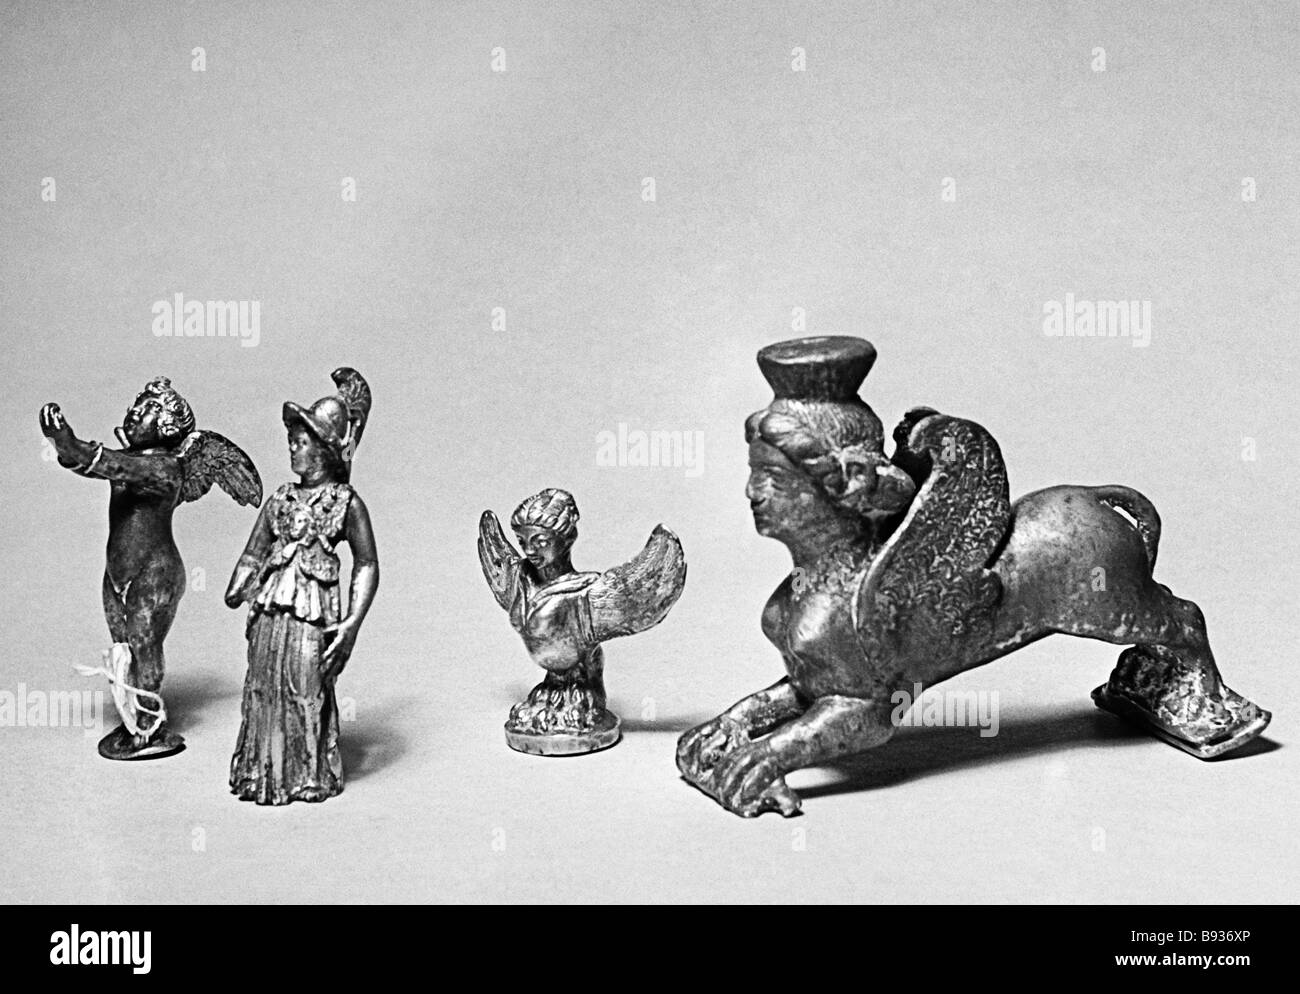 Silver and gilded figurines of Parthian gods discovered during the excavations of Parthia s capital Nisa on the - Stock Image